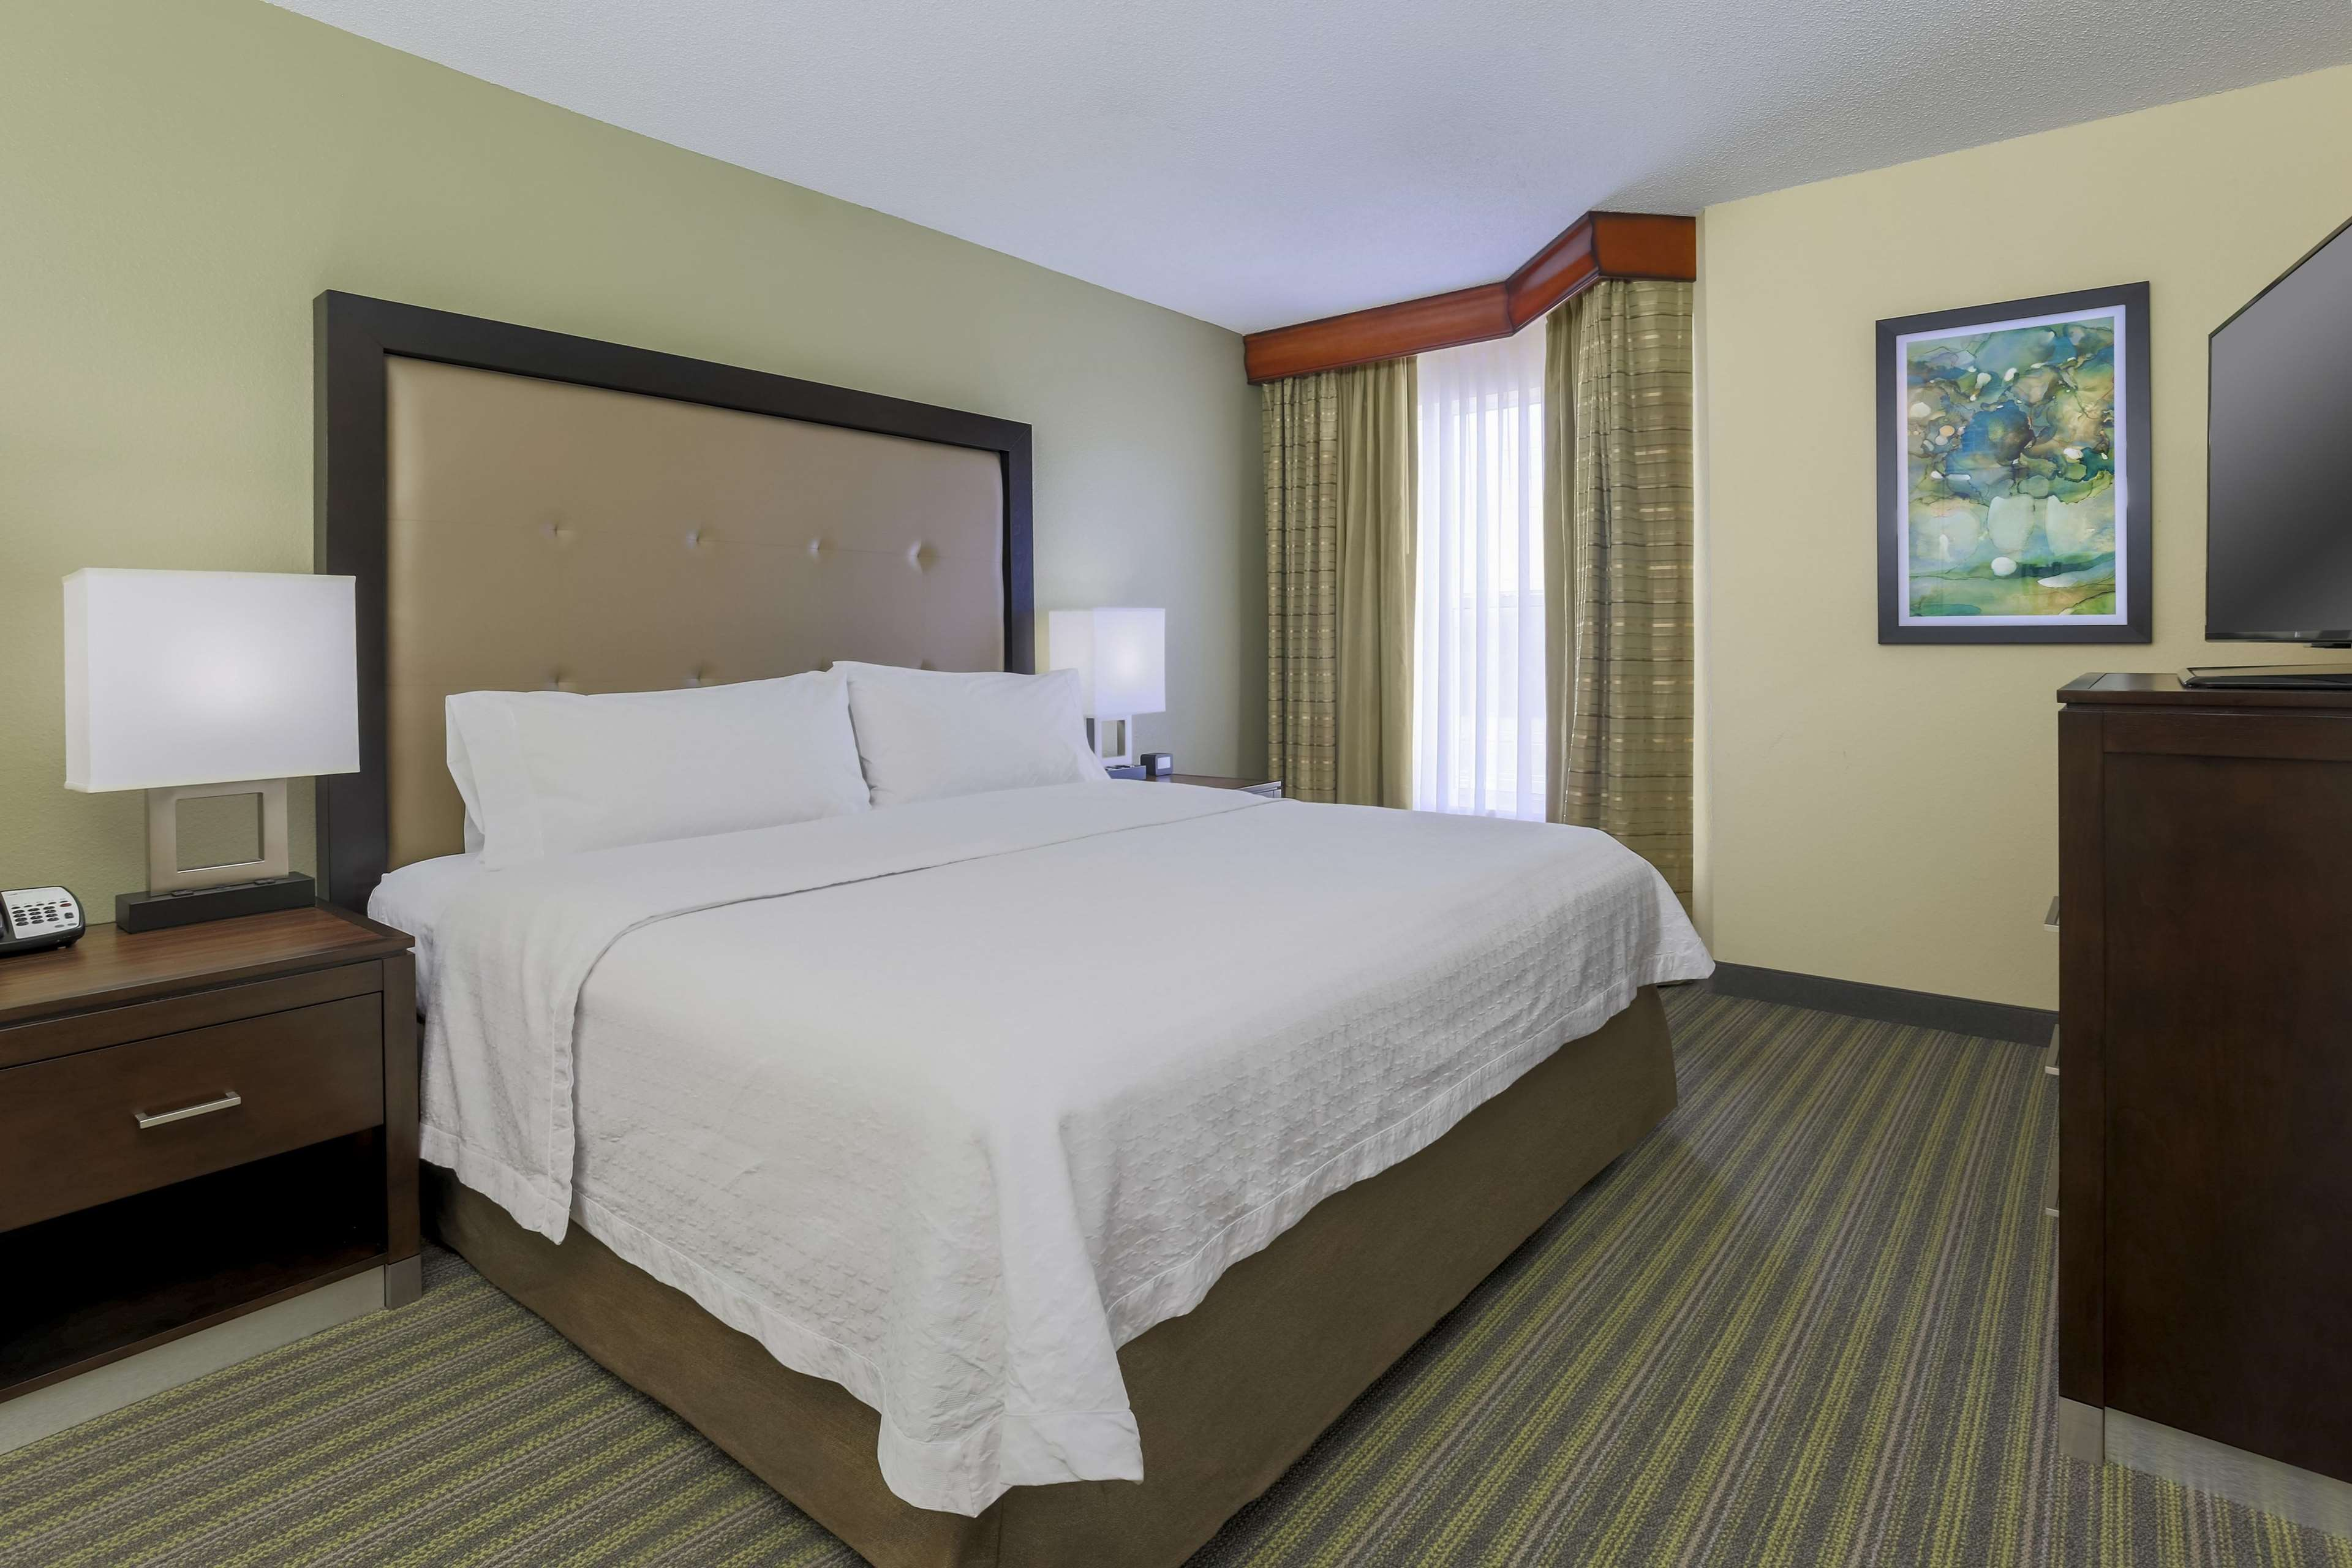 Homewood Suites by Hilton St. Petersburg Clearwater image 10